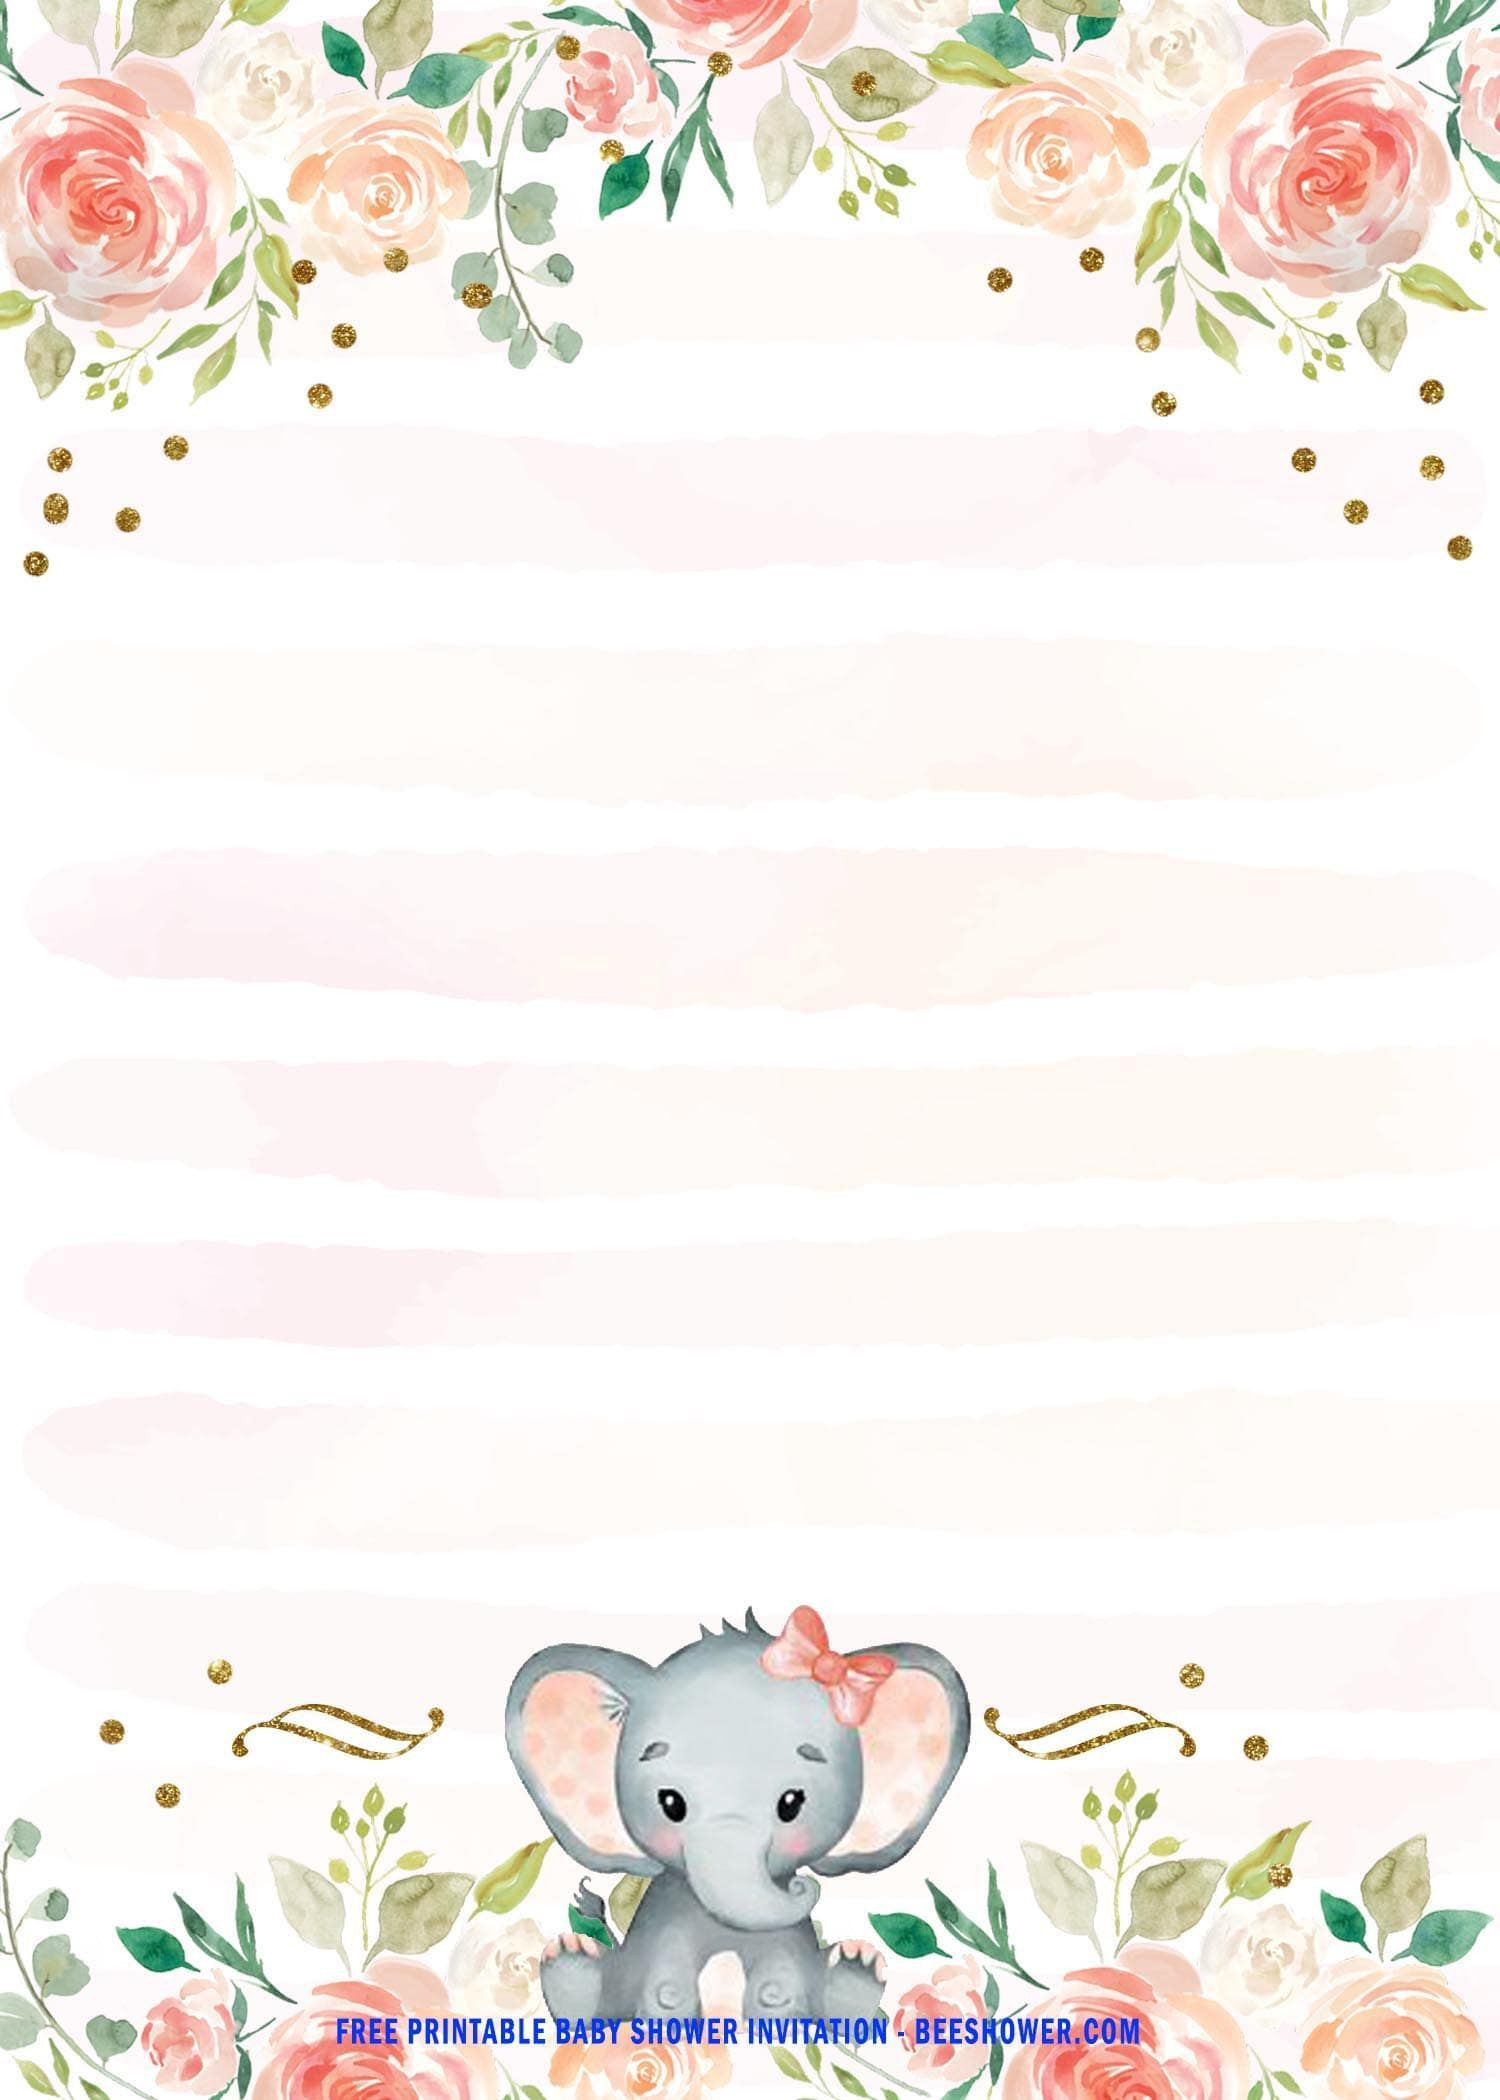 004 Archaicawful Free Girl Baby Shower Invitation To Print Picture  Printable TwinFull